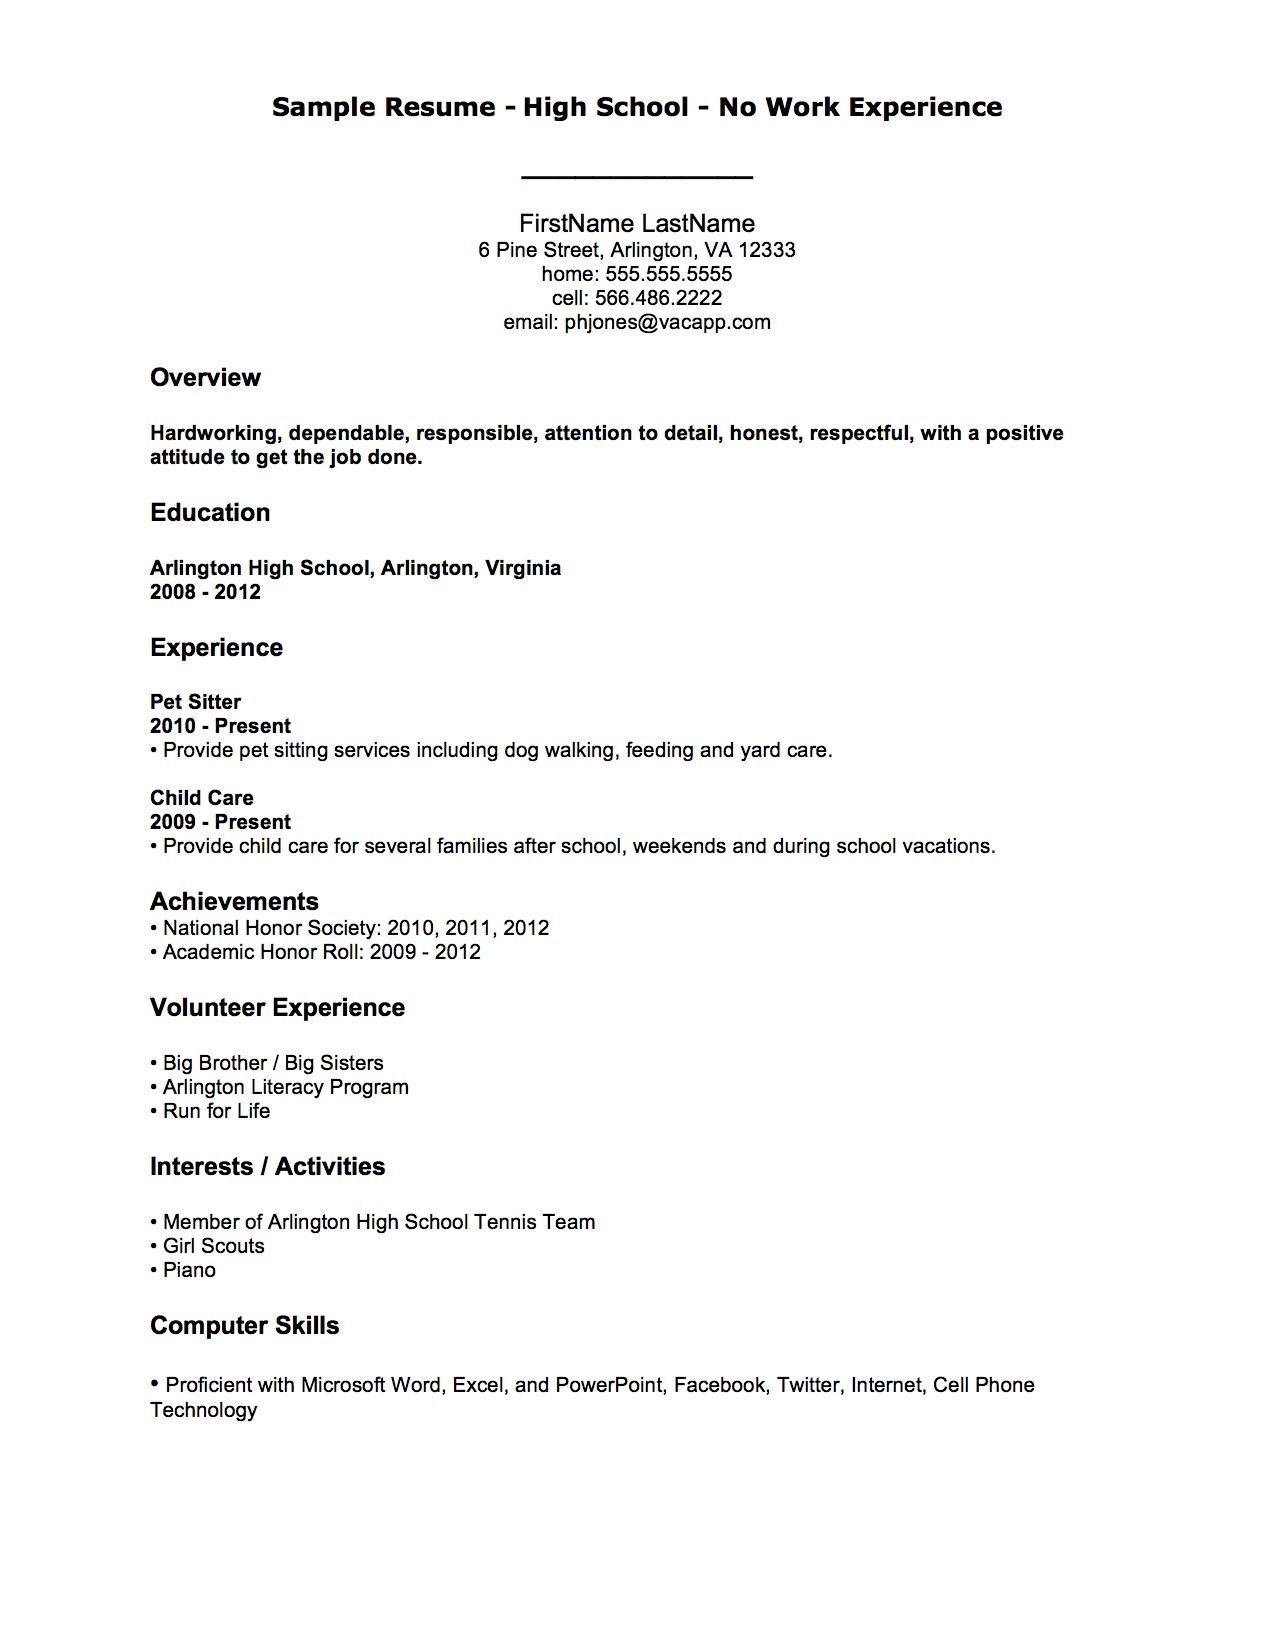 resume examples with no job experience | 1-resume examples | sample